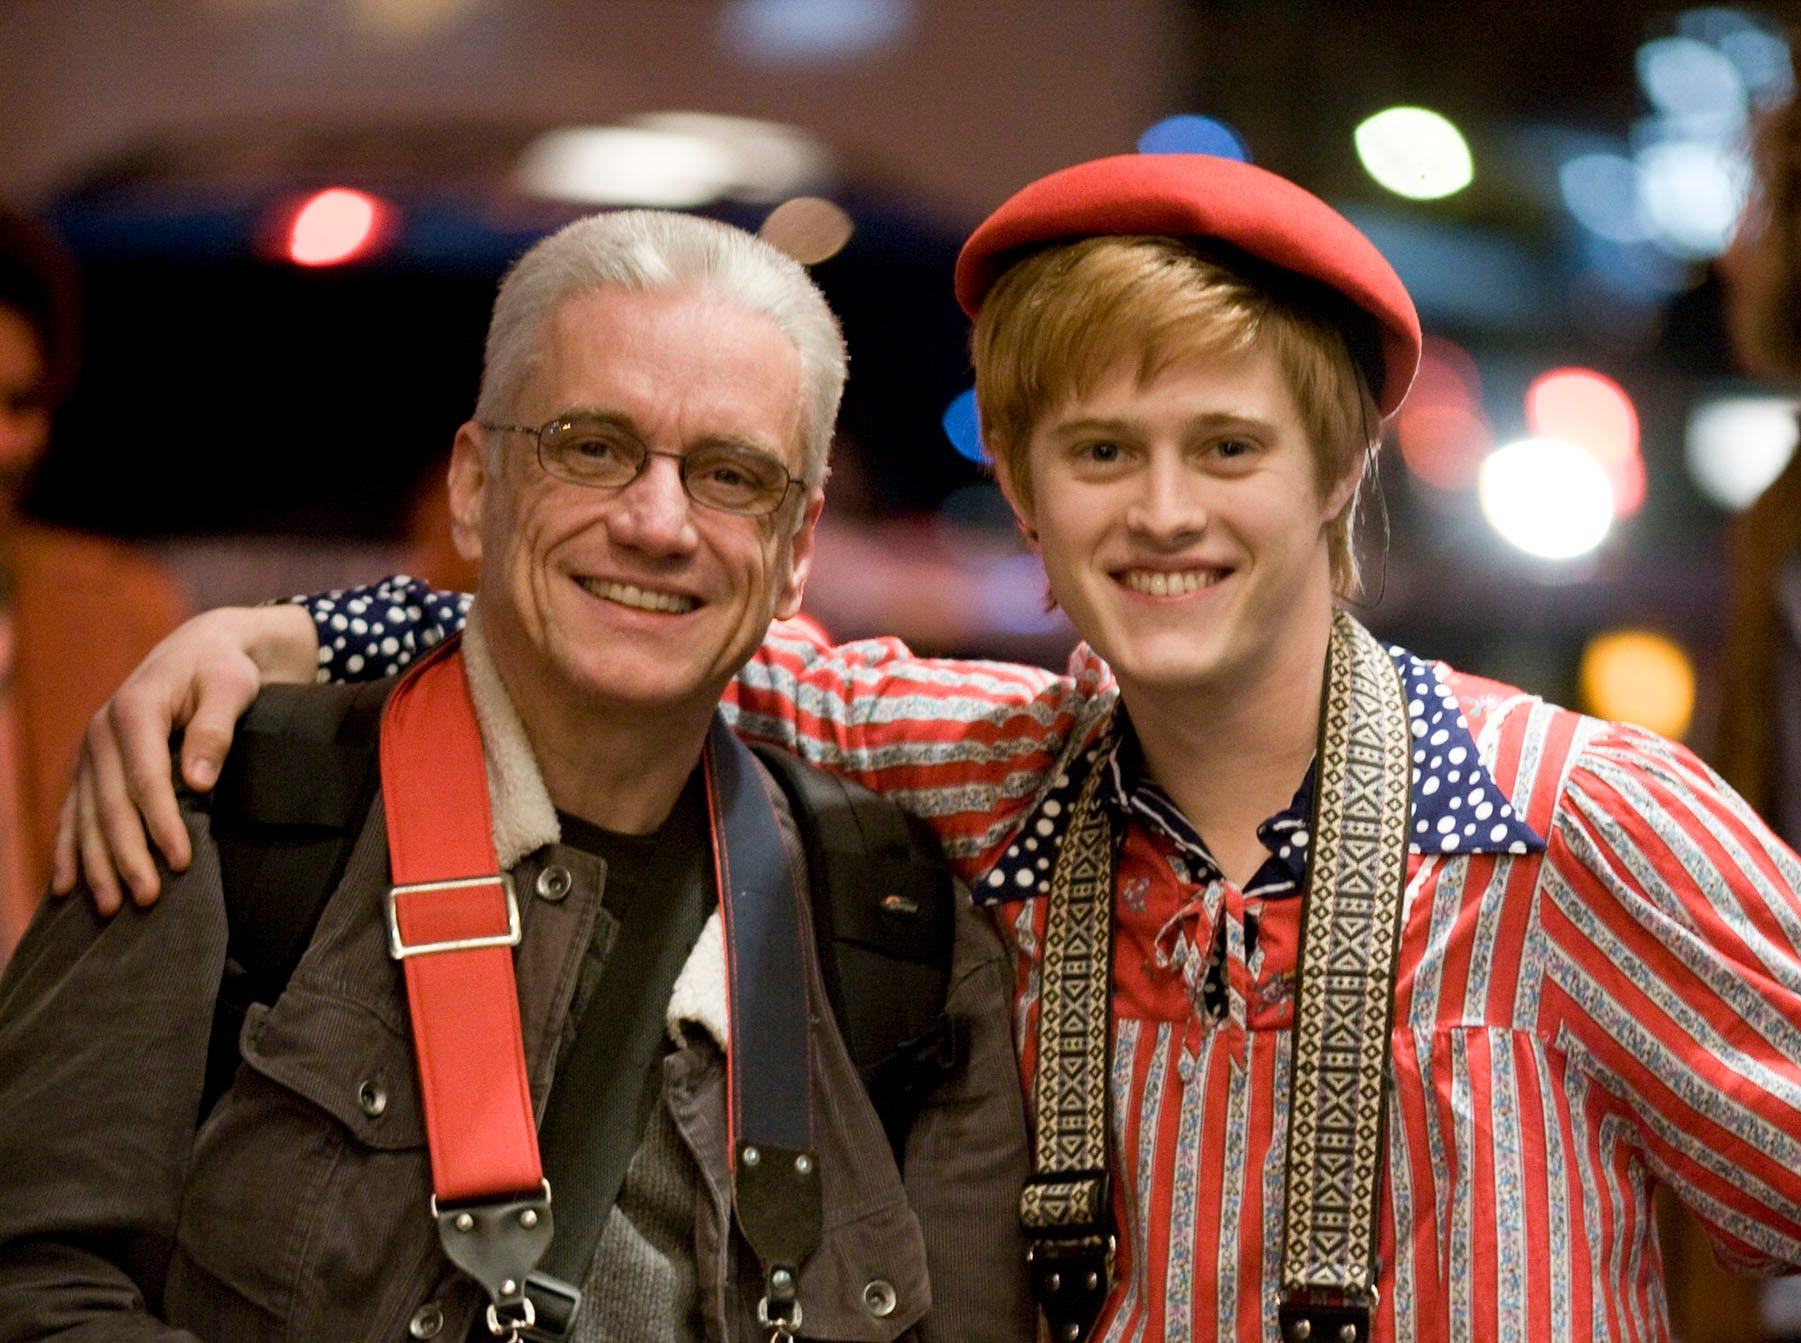 (L-R) Real-life gay activist Danny Nicoletta and his on-screen portrayer, actor Lucas Grabeel on the set of the motion picture Milk. --- DATE TAKEN: rec'd 12/08  By Phil Bray   Focus Features        HO      - handout   ORG XMIT: ZX70621